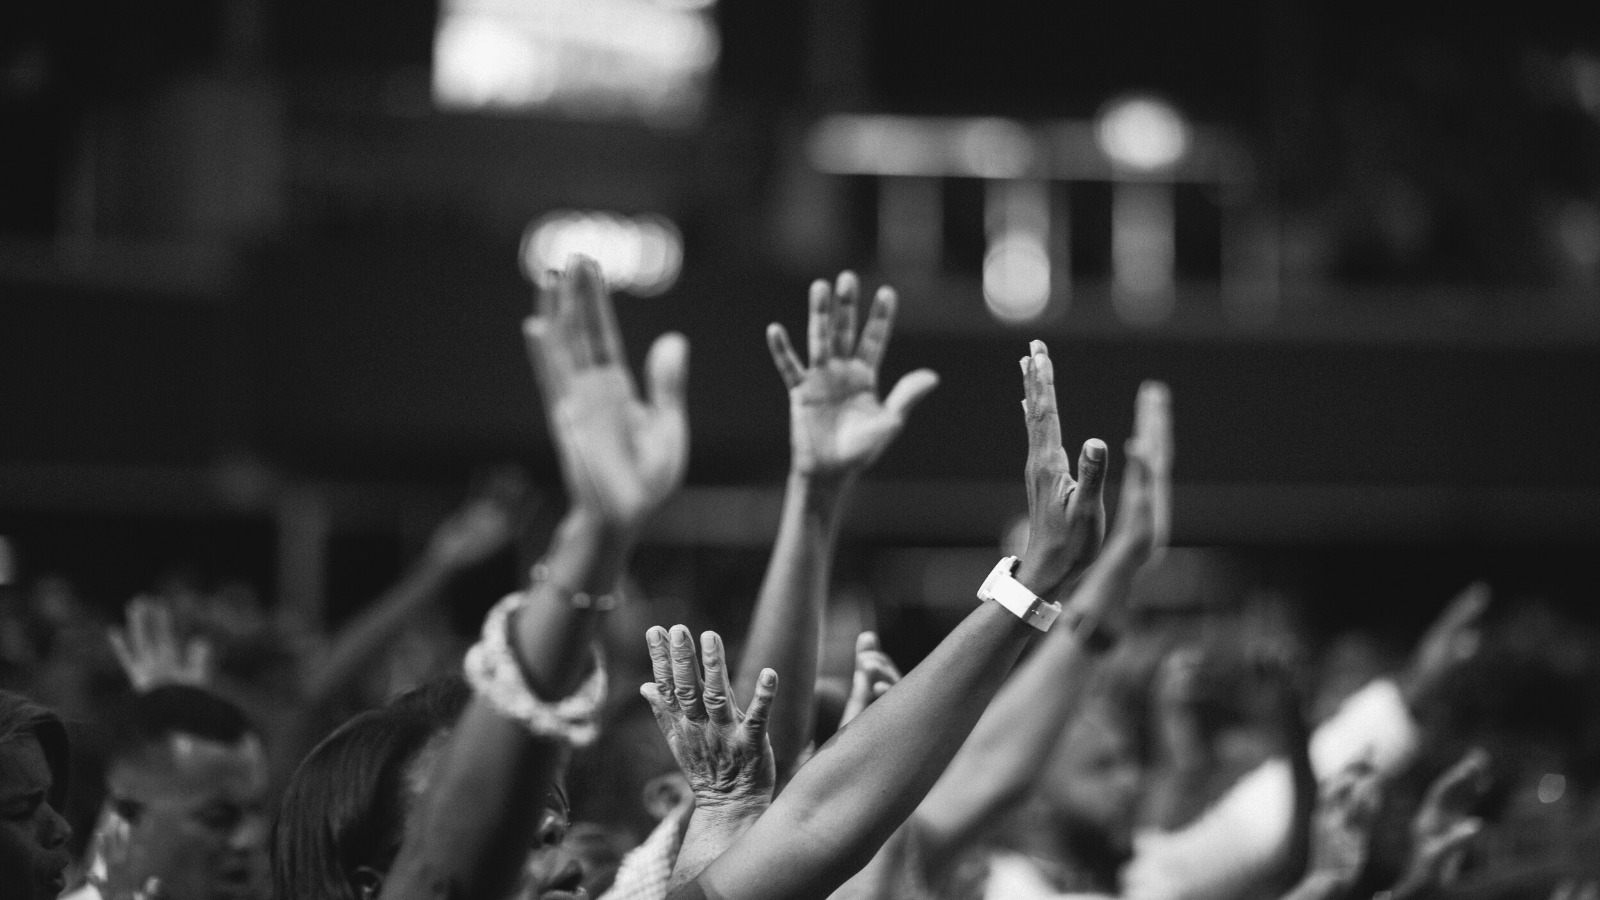 Grayscale image of people holding up their hands